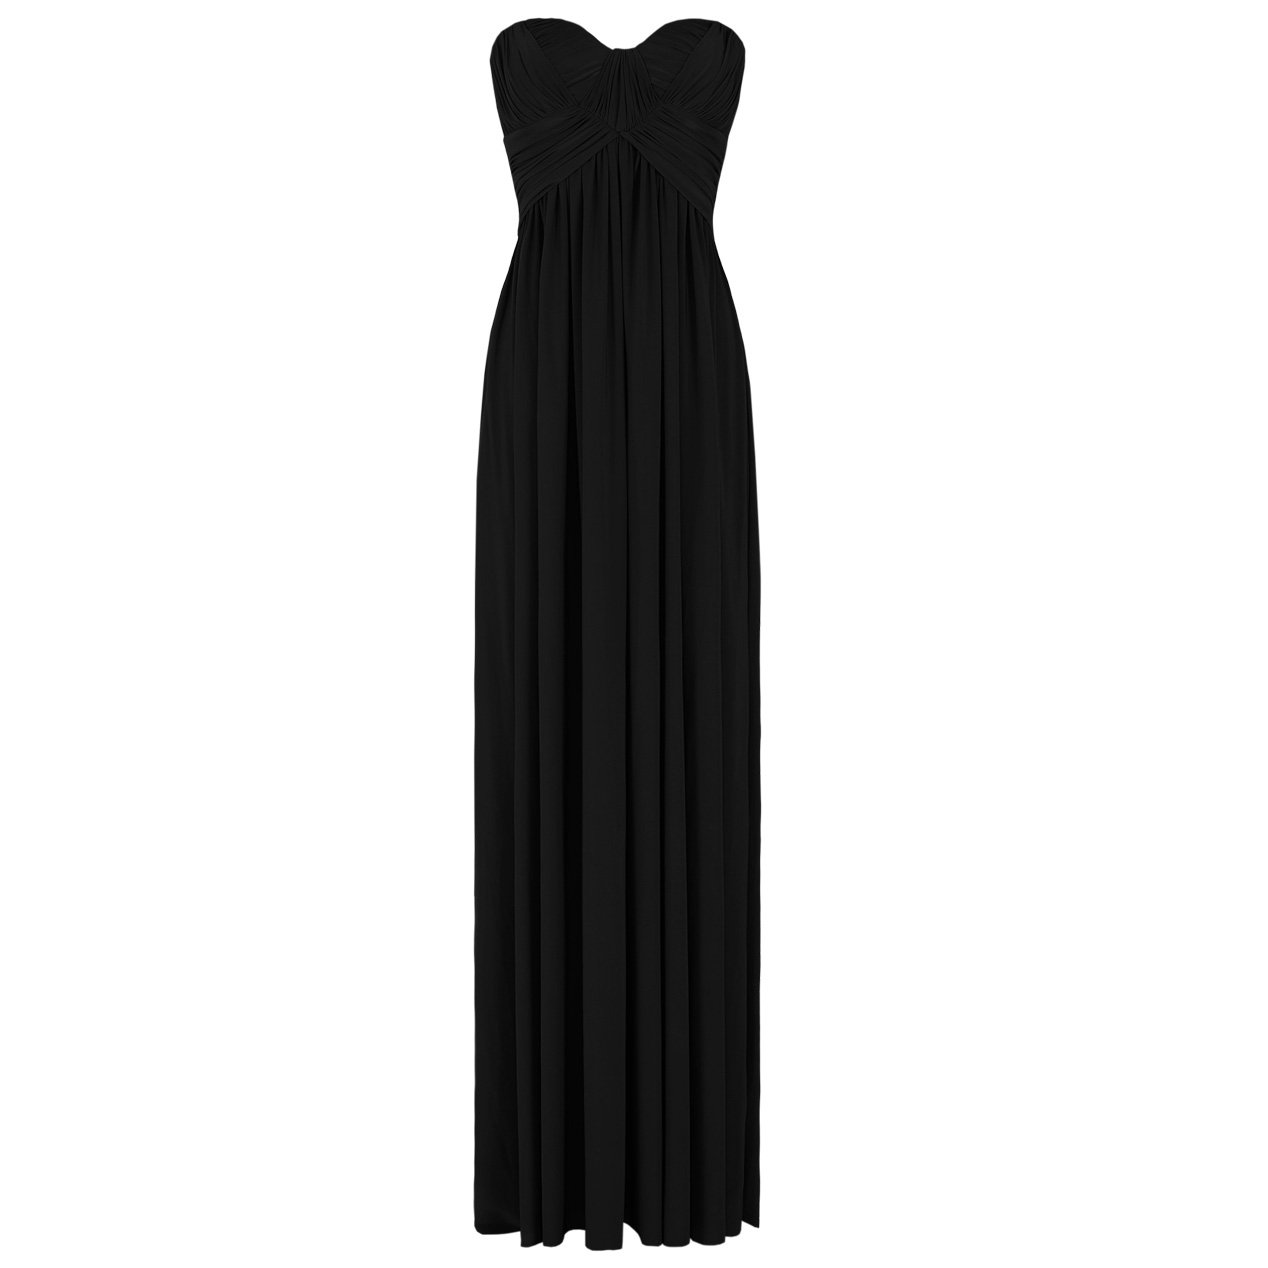 JESSICA ALBA BLACK LADIES STRAPLESS LONG SUMMER EVENING PARTY PROM GOWN MAXI DRESS UK 8-10, US 4-6